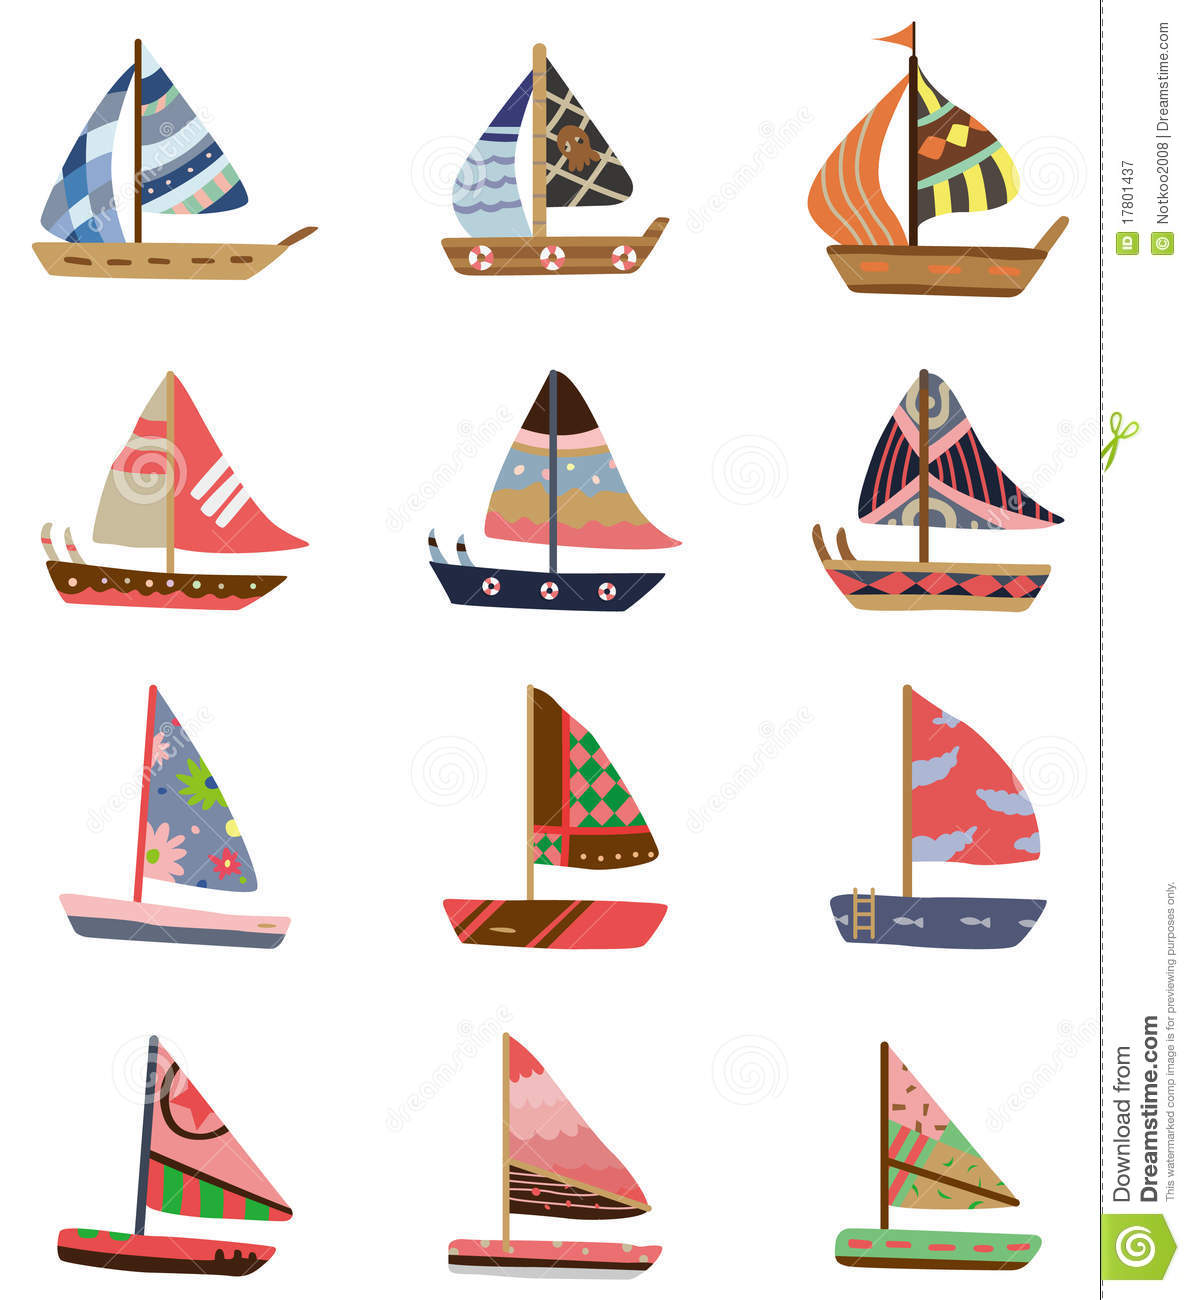 Gallery For gt Cartoon Sailboat